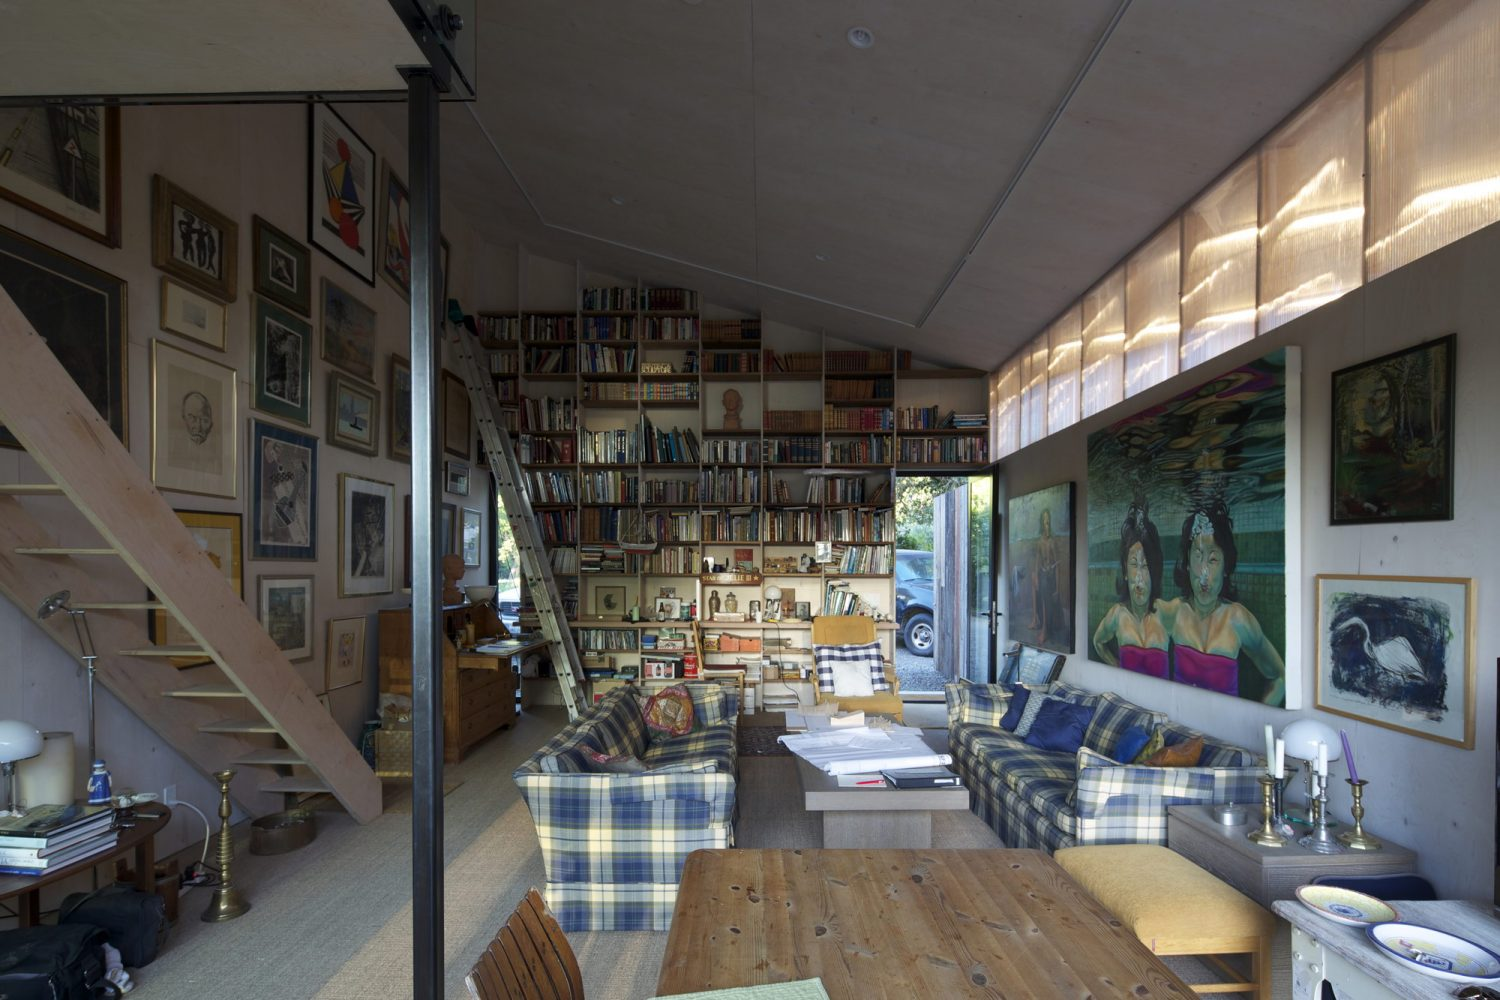 Meier Road Artist Studio in California